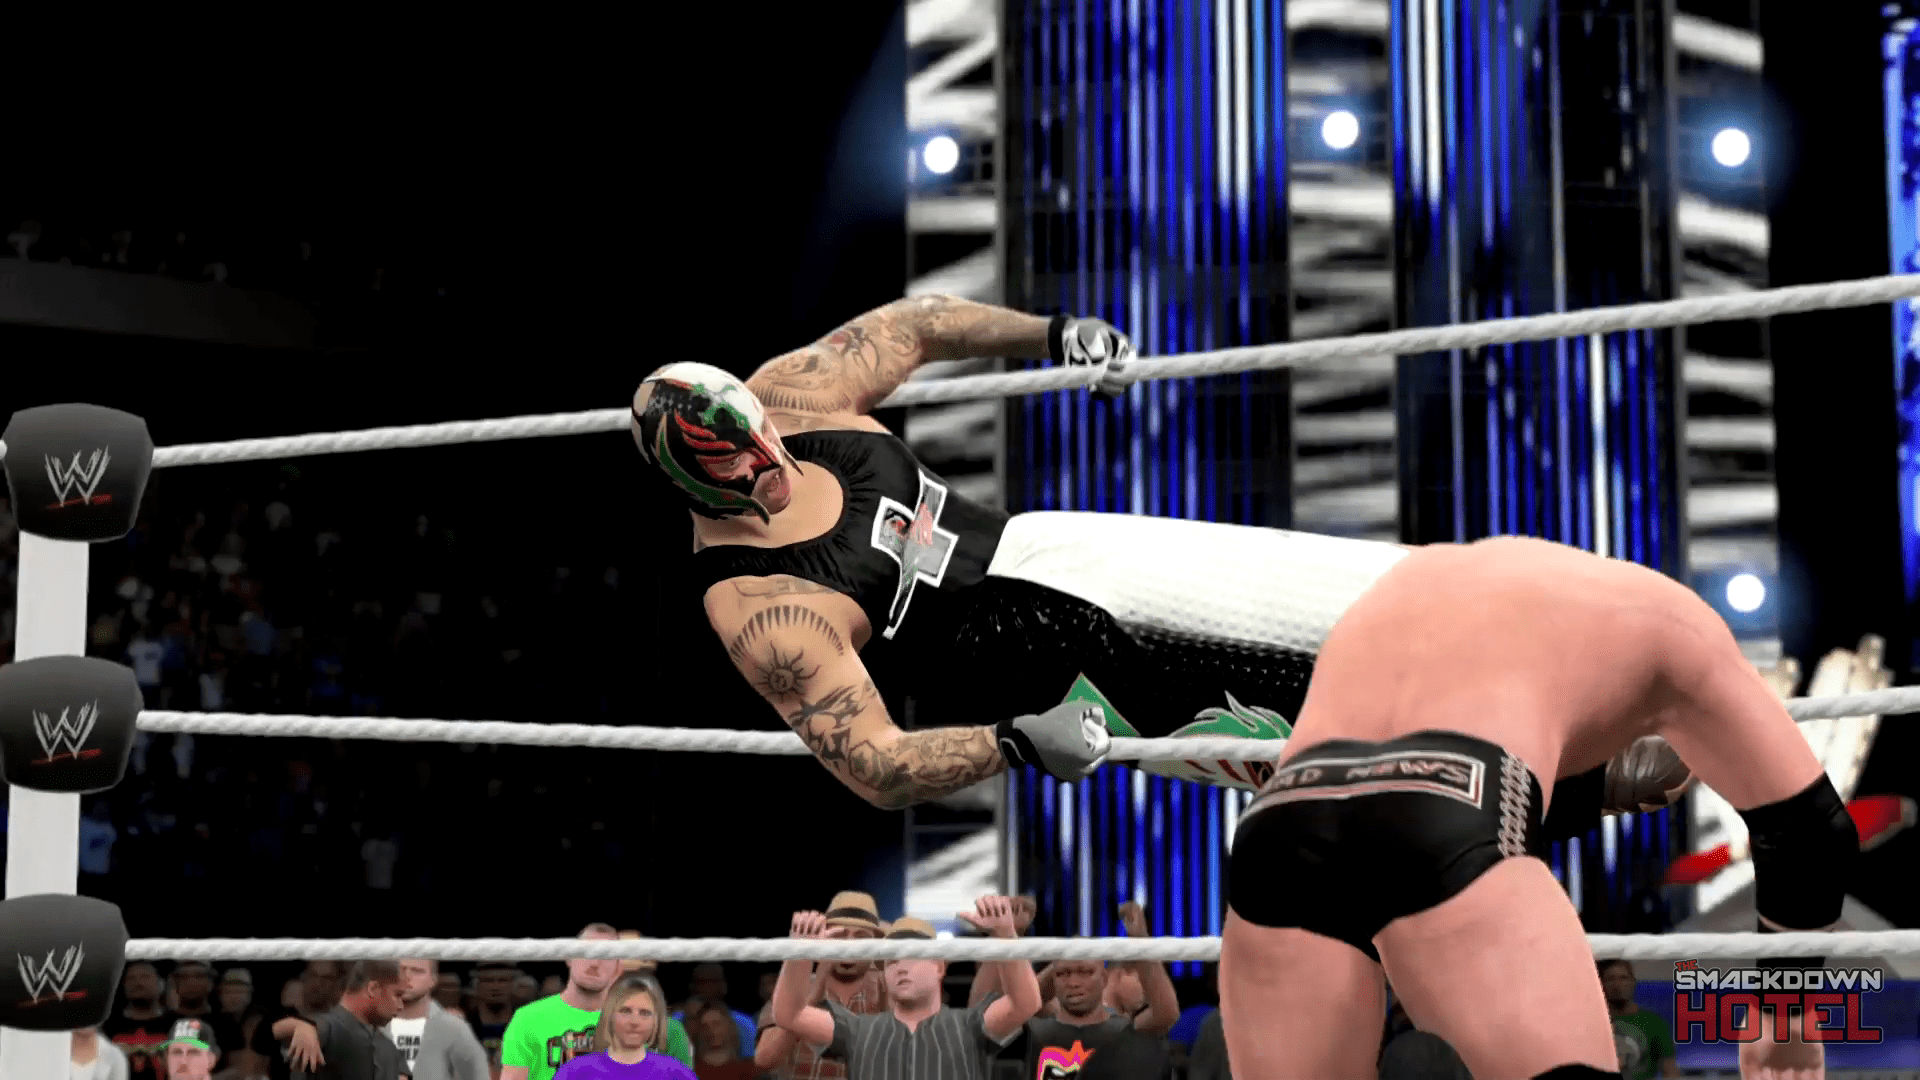 Rey mysterio wwe 2k15 roster - Wwe 619 images ...